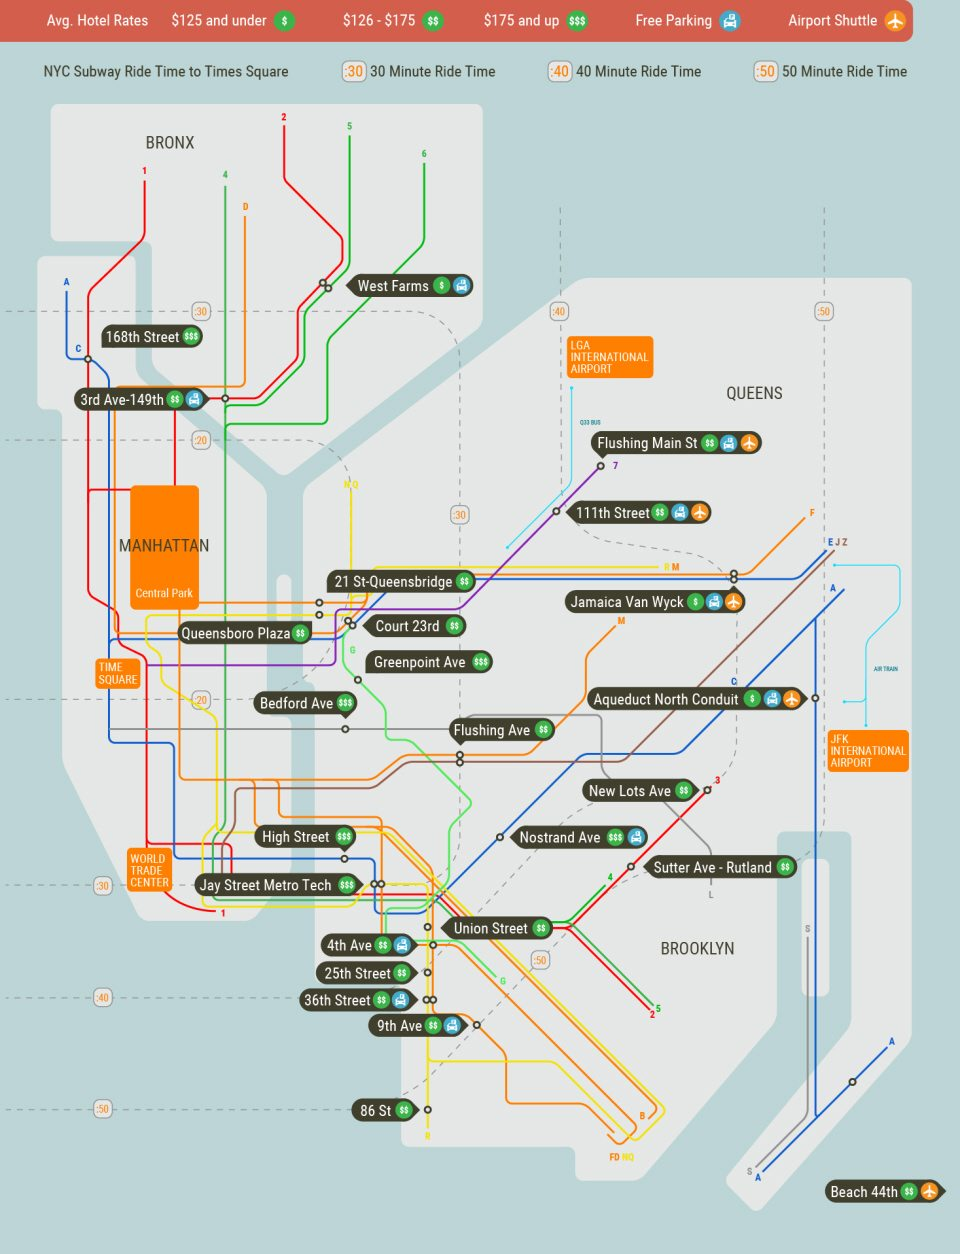 Subway Map Nyc Nj.Map Of Brooklyn Bronx Queens Hotels Near Nyc Subway